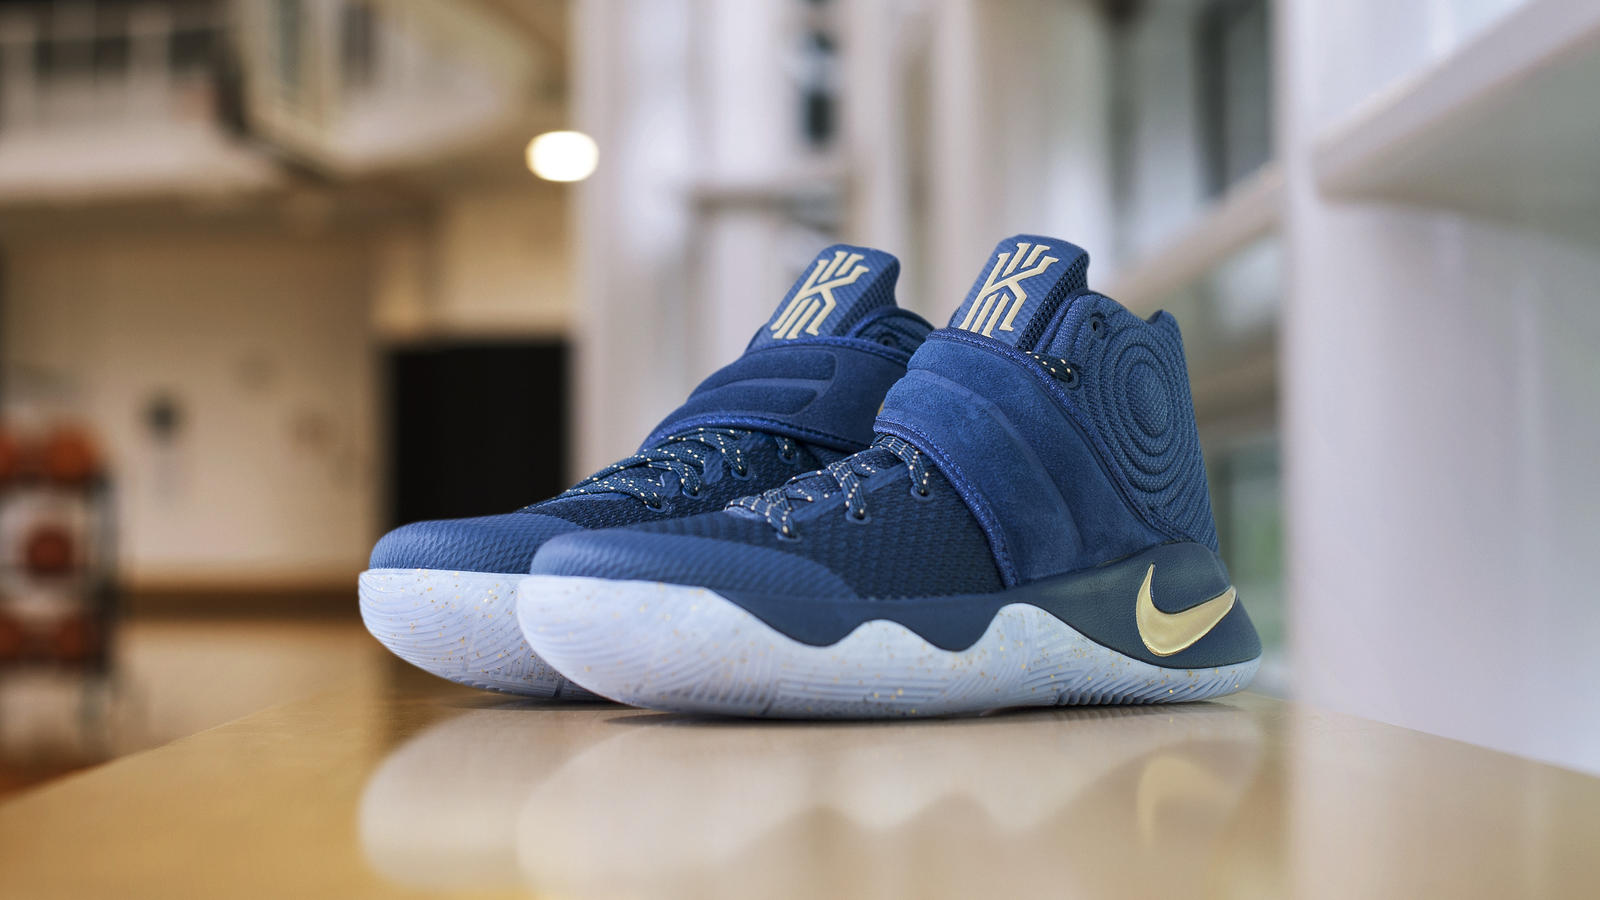 Kyrie navy dsc 4286 hd 1600